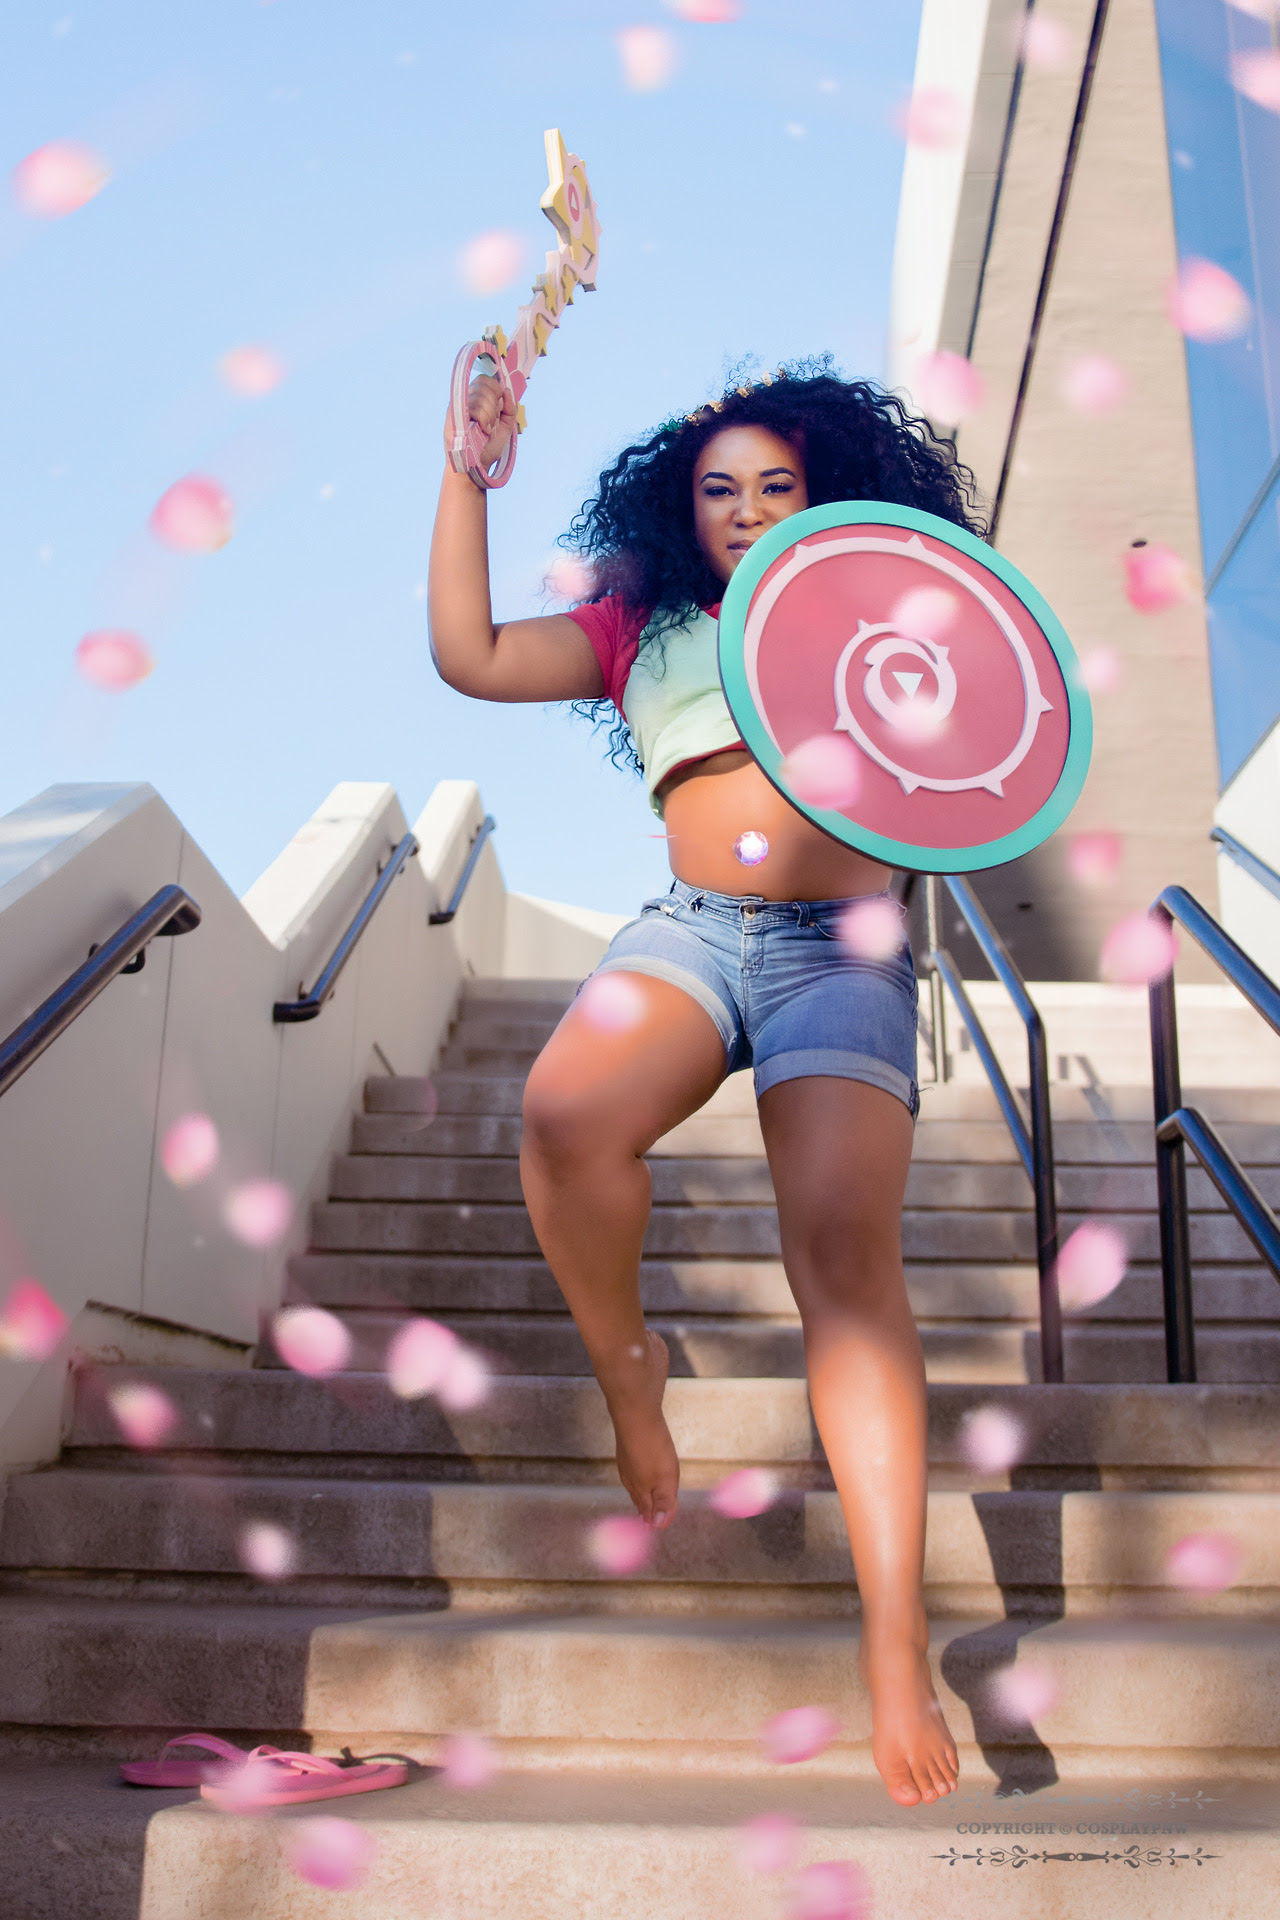 Stevonnie cosplay by @norin0vaaa set from @kuronekocon this year!